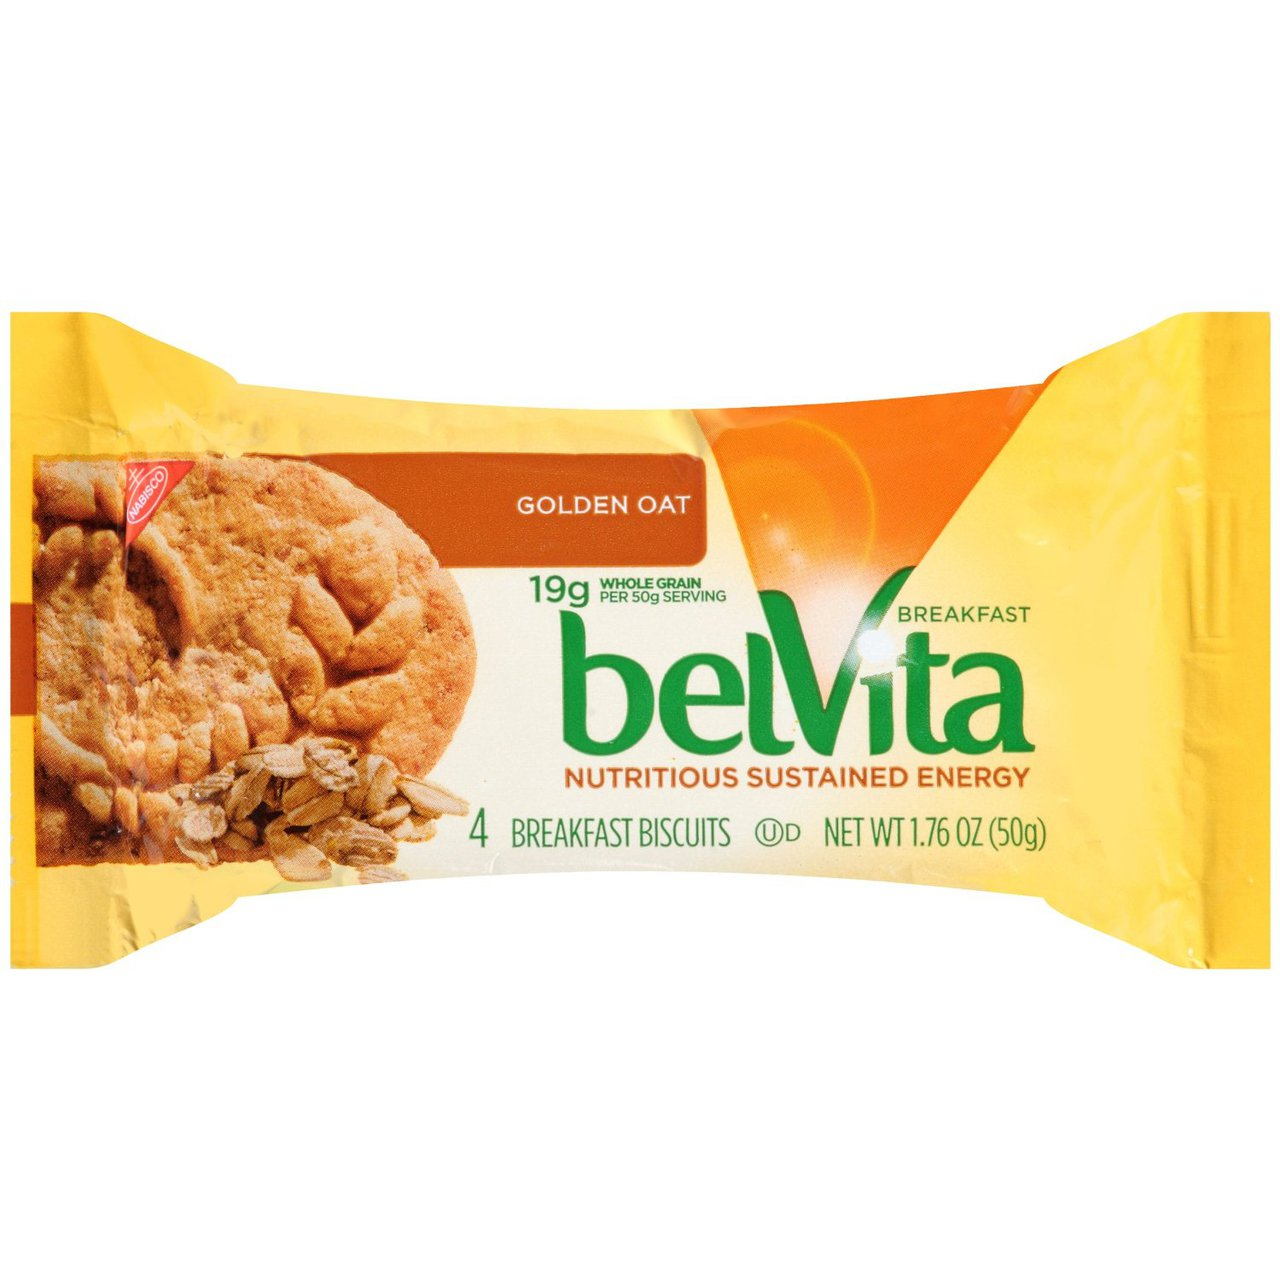 belVita Golden Oat Breakfast Biscuits 4 ct Wrapper